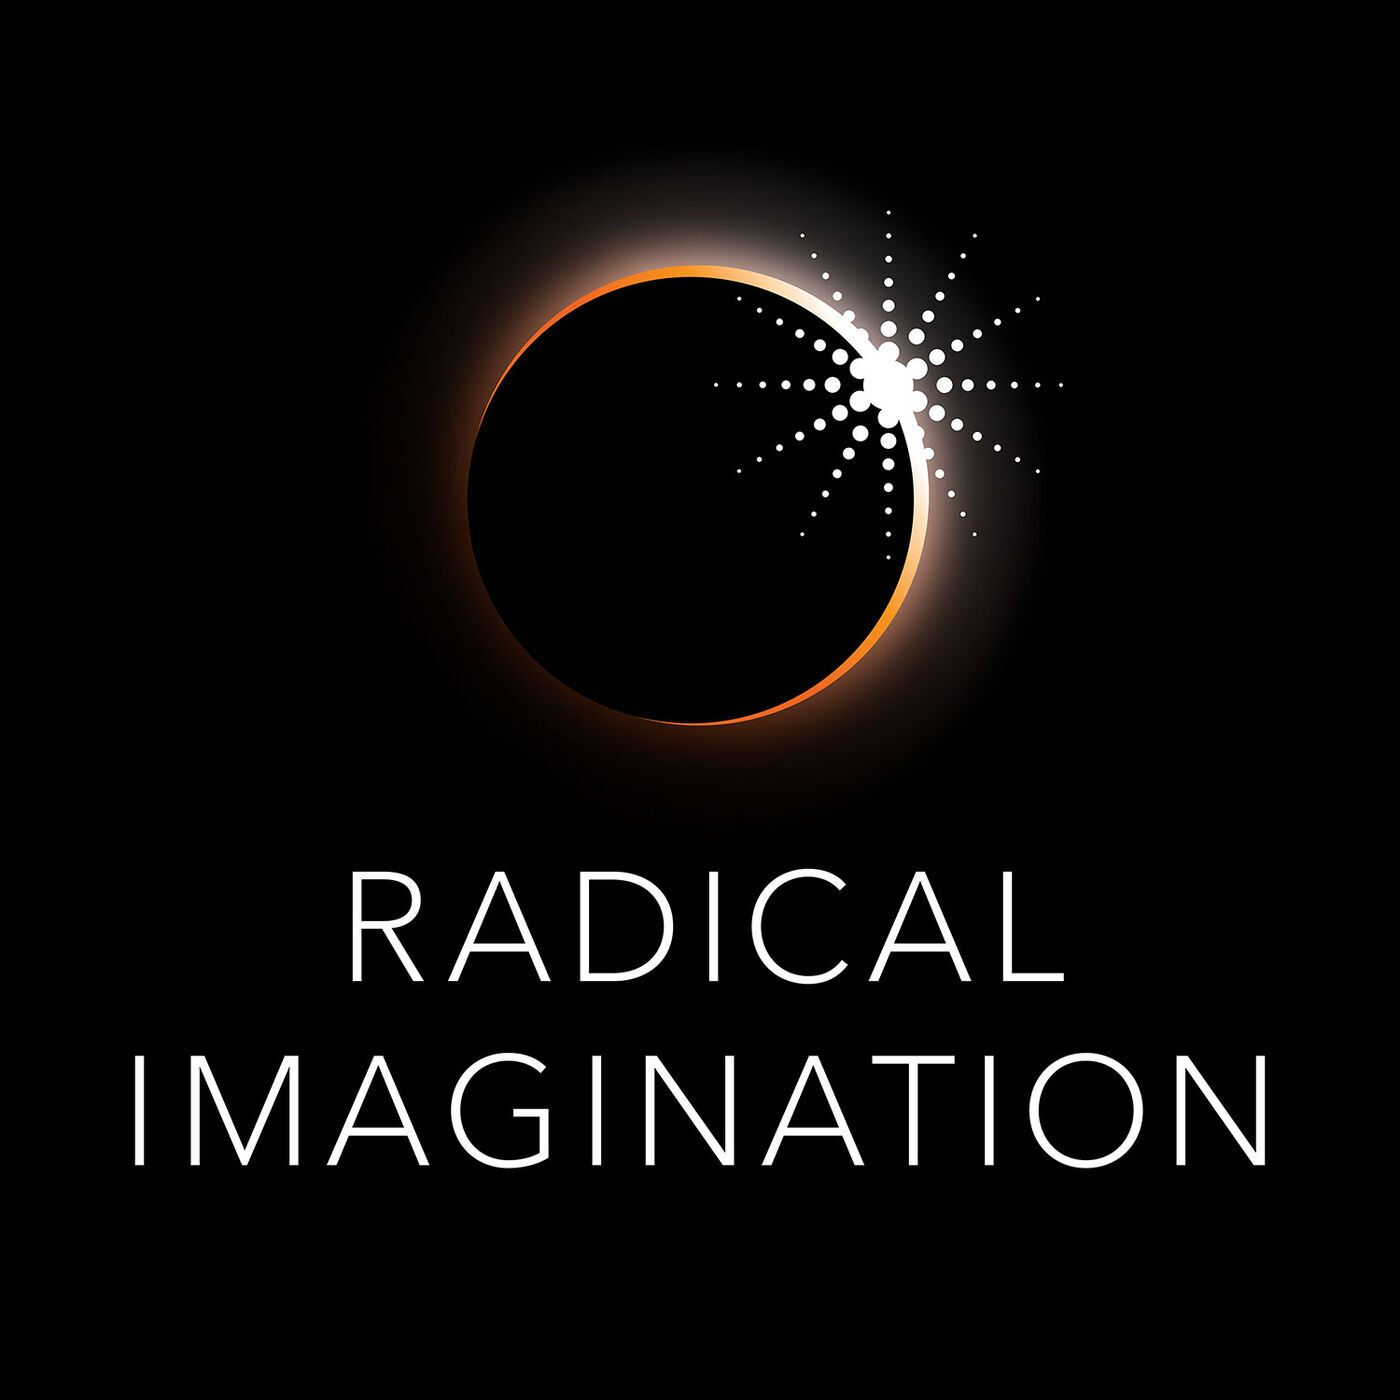 Radical Imagination 8 - Housing As A Human Right